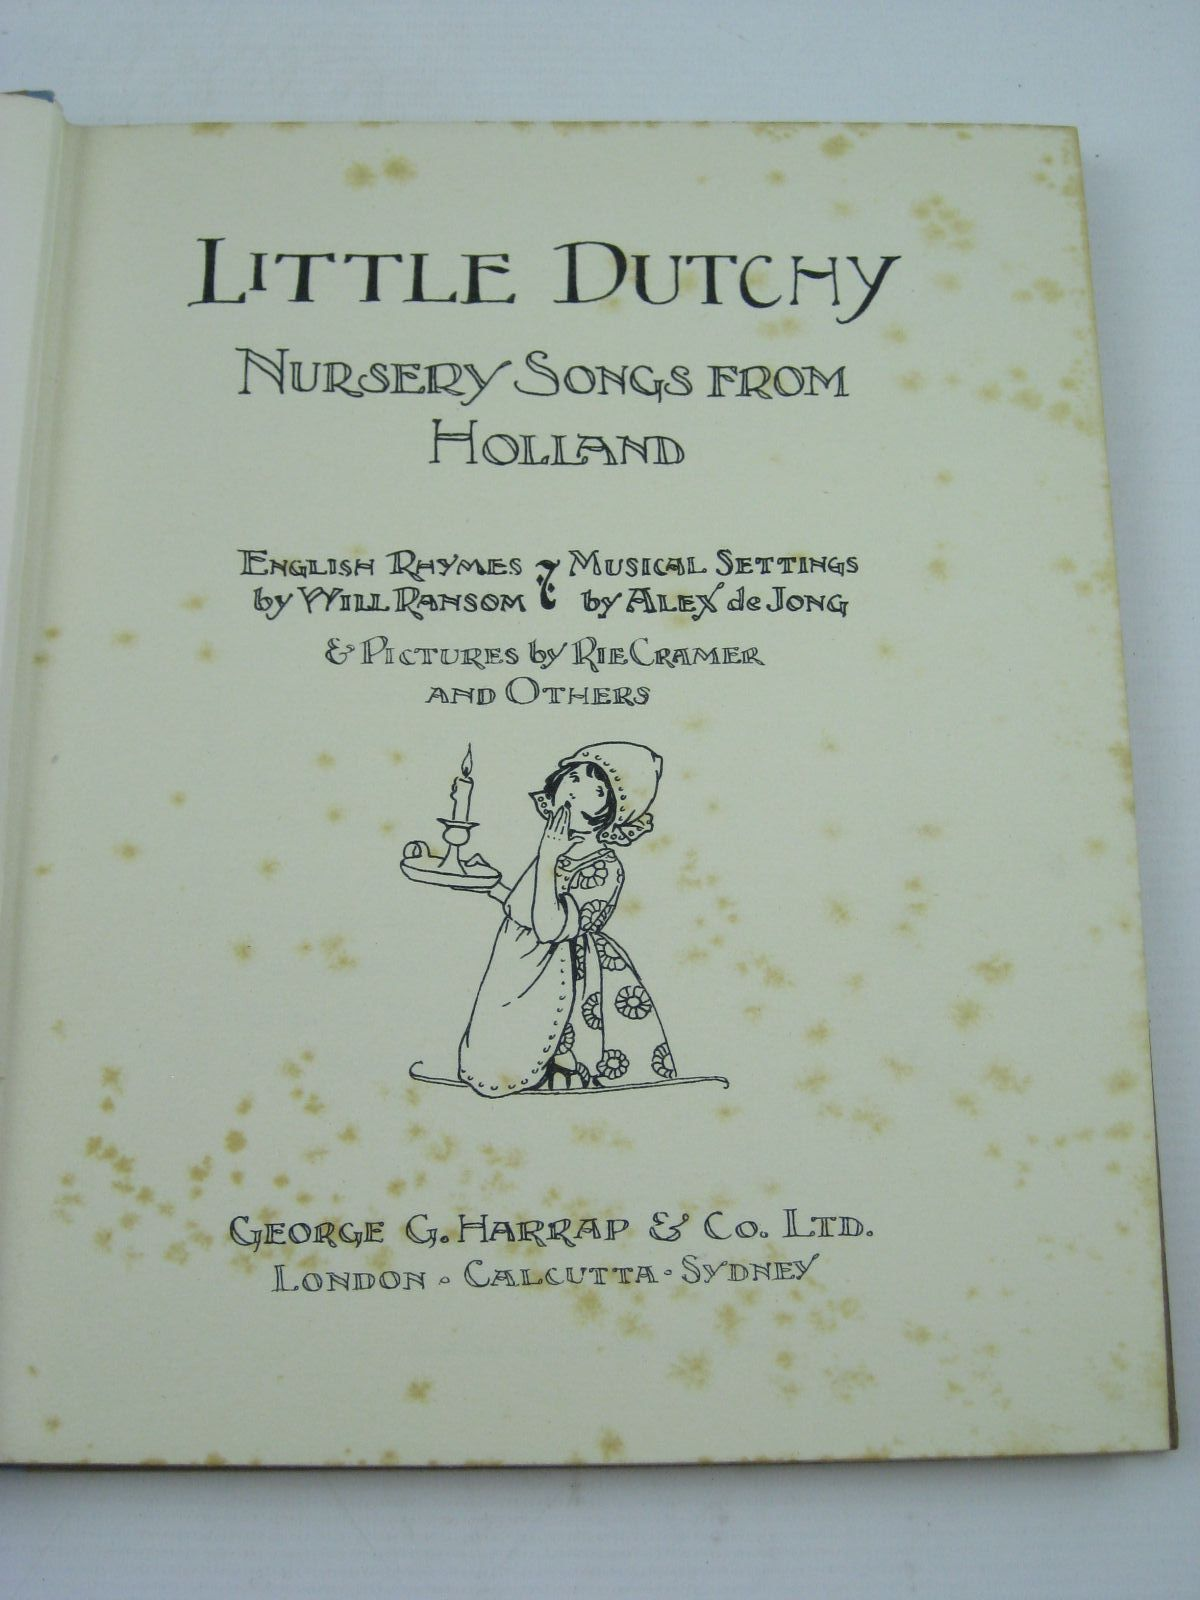 Photo of LITTLE DUTCHY - NURSERY SONGS FROM HOLLAND written by Ransom, Will illustrated by Cramer, Rie Anderson, Anne published by George G. Harrap & Co. Ltd. (STOCK CODE: 1507493)  for sale by Stella & Rose's Books